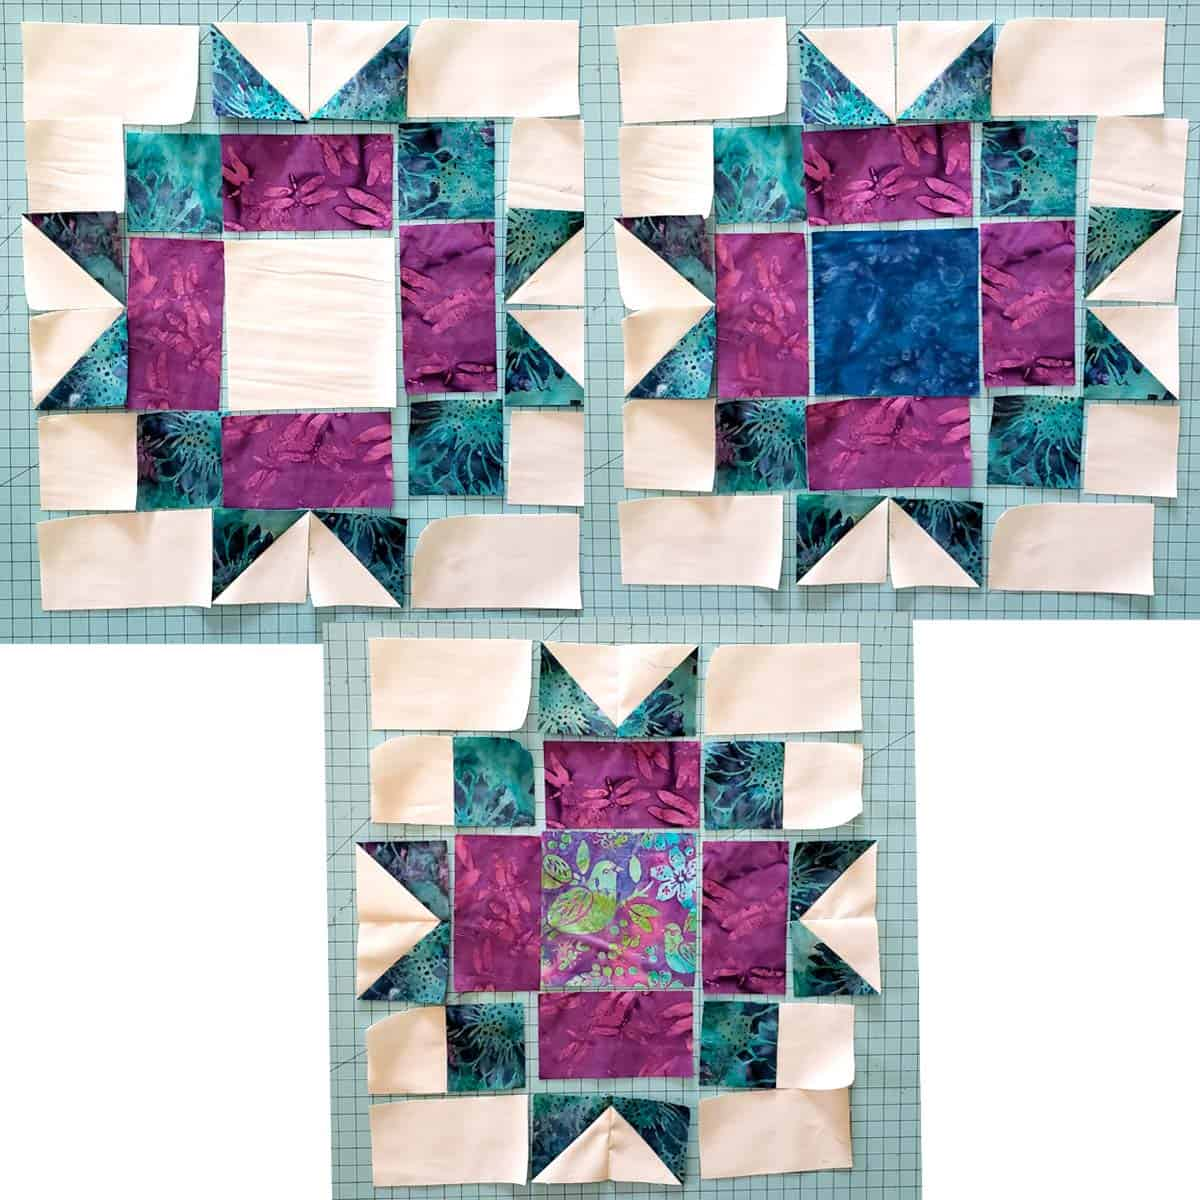 Maple Star quilt block variations in colors